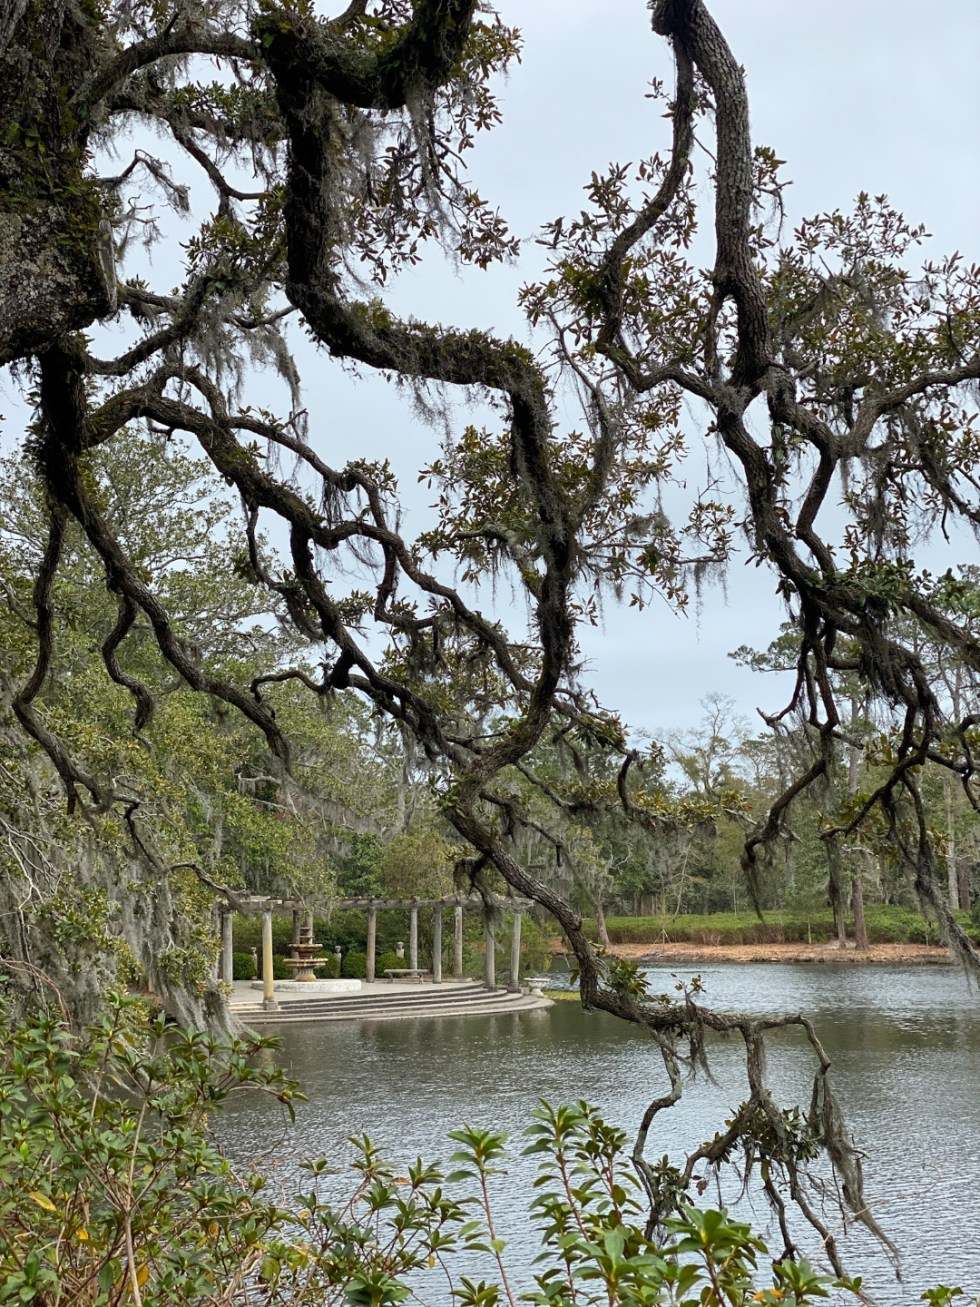 A Spring Weekend in Wilmington, NC: the Best Things to Do - I'm Fixin' To - @imfixintoblog |Weekend in Wilmington by popular NC travel blog, I'm Fixin' To: image of oak tree branches hanging over a lake.